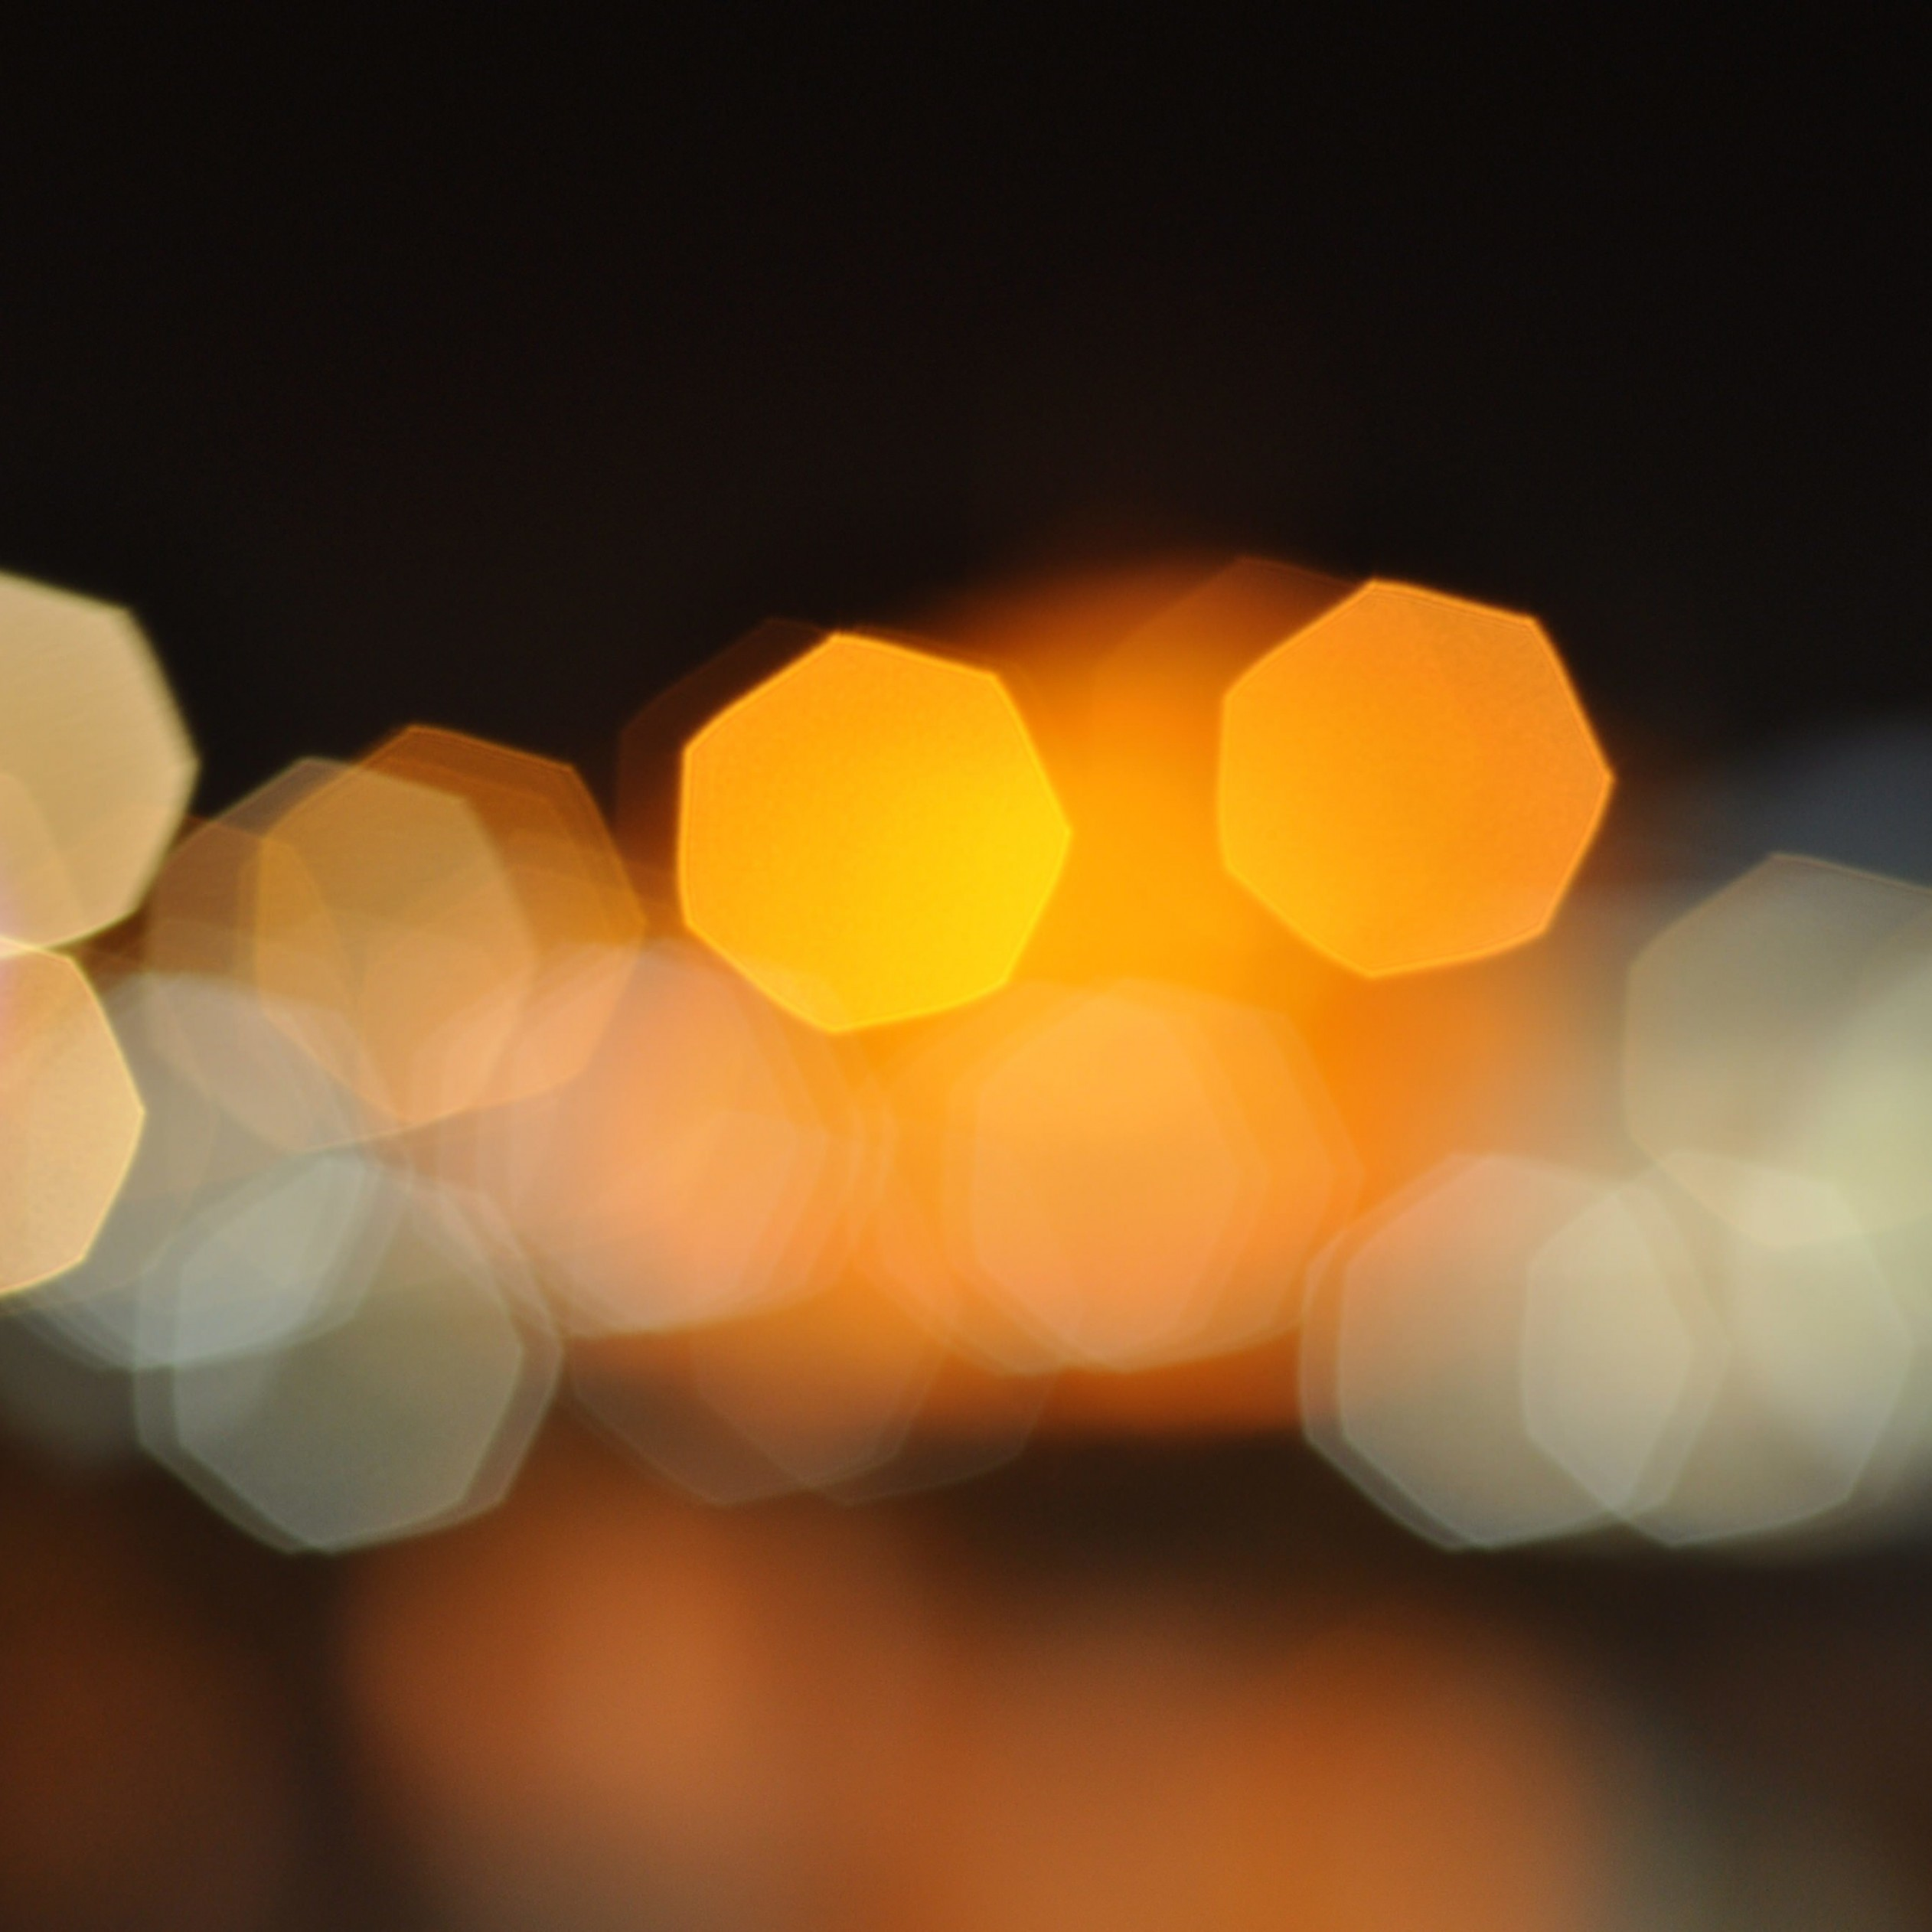 Blurred City Lights Wallpaper for Apple iPad Air